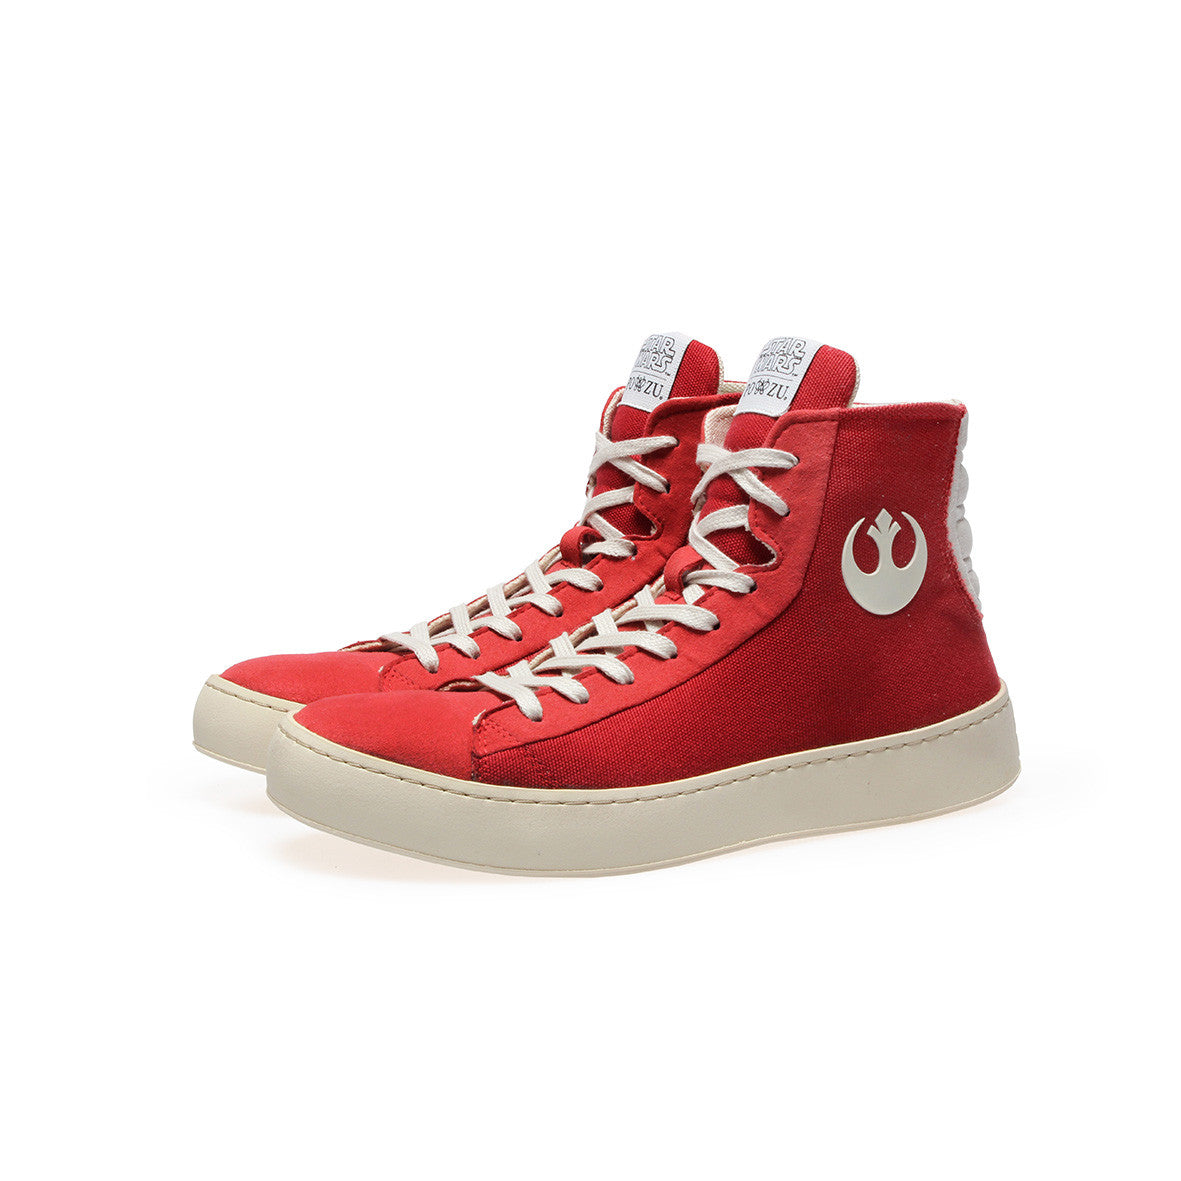 1cb4d56673 OFFICIAL Star Wars Womens RESISTANCE Red High Top Sneaker